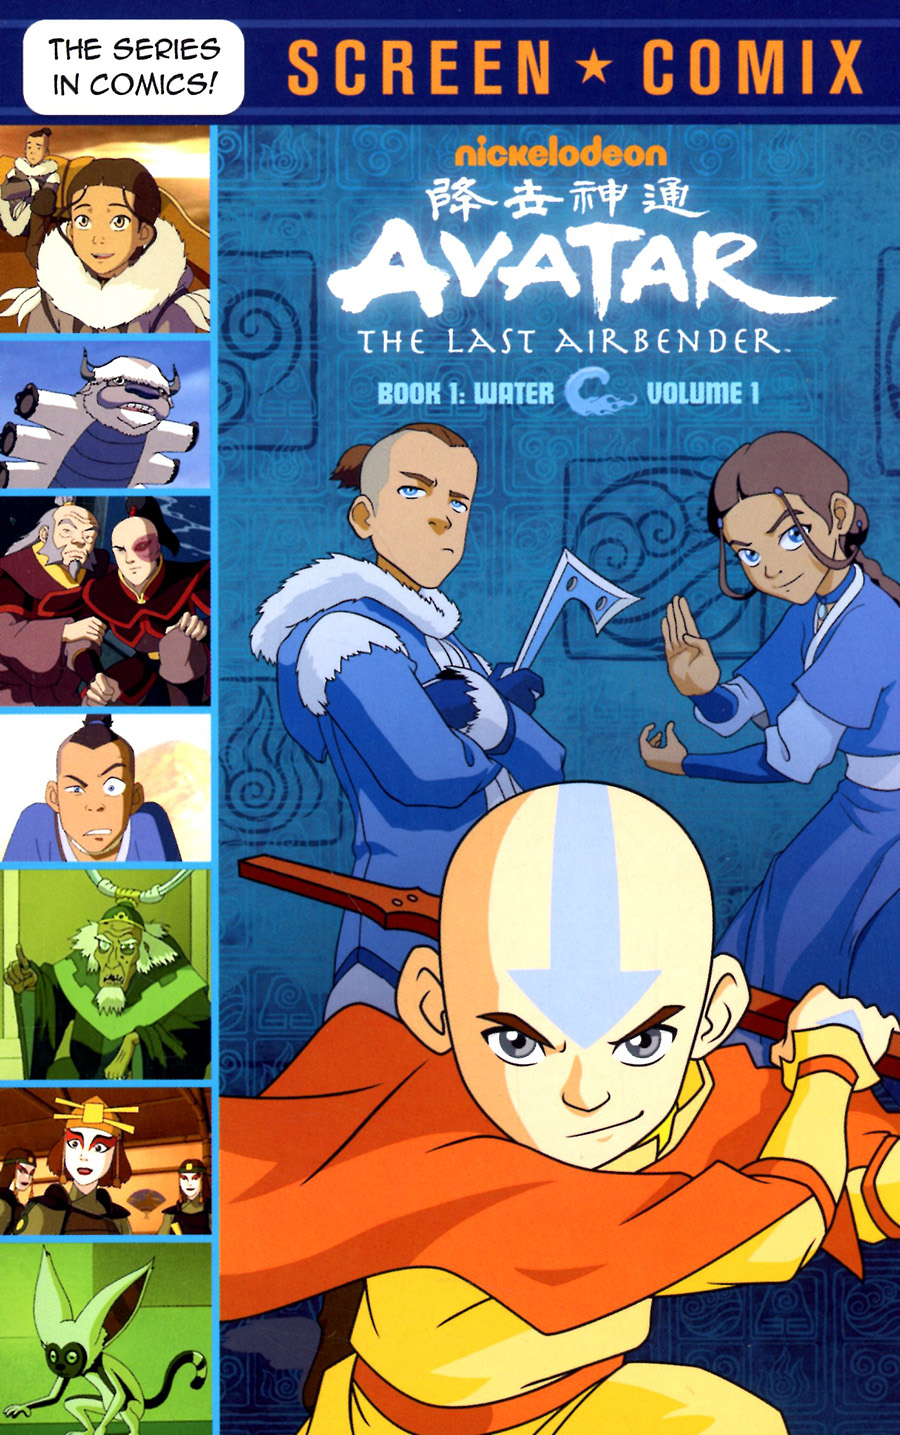 Avatar The Last Airbender Screen Comix Book 1 Water Vol 1 TP